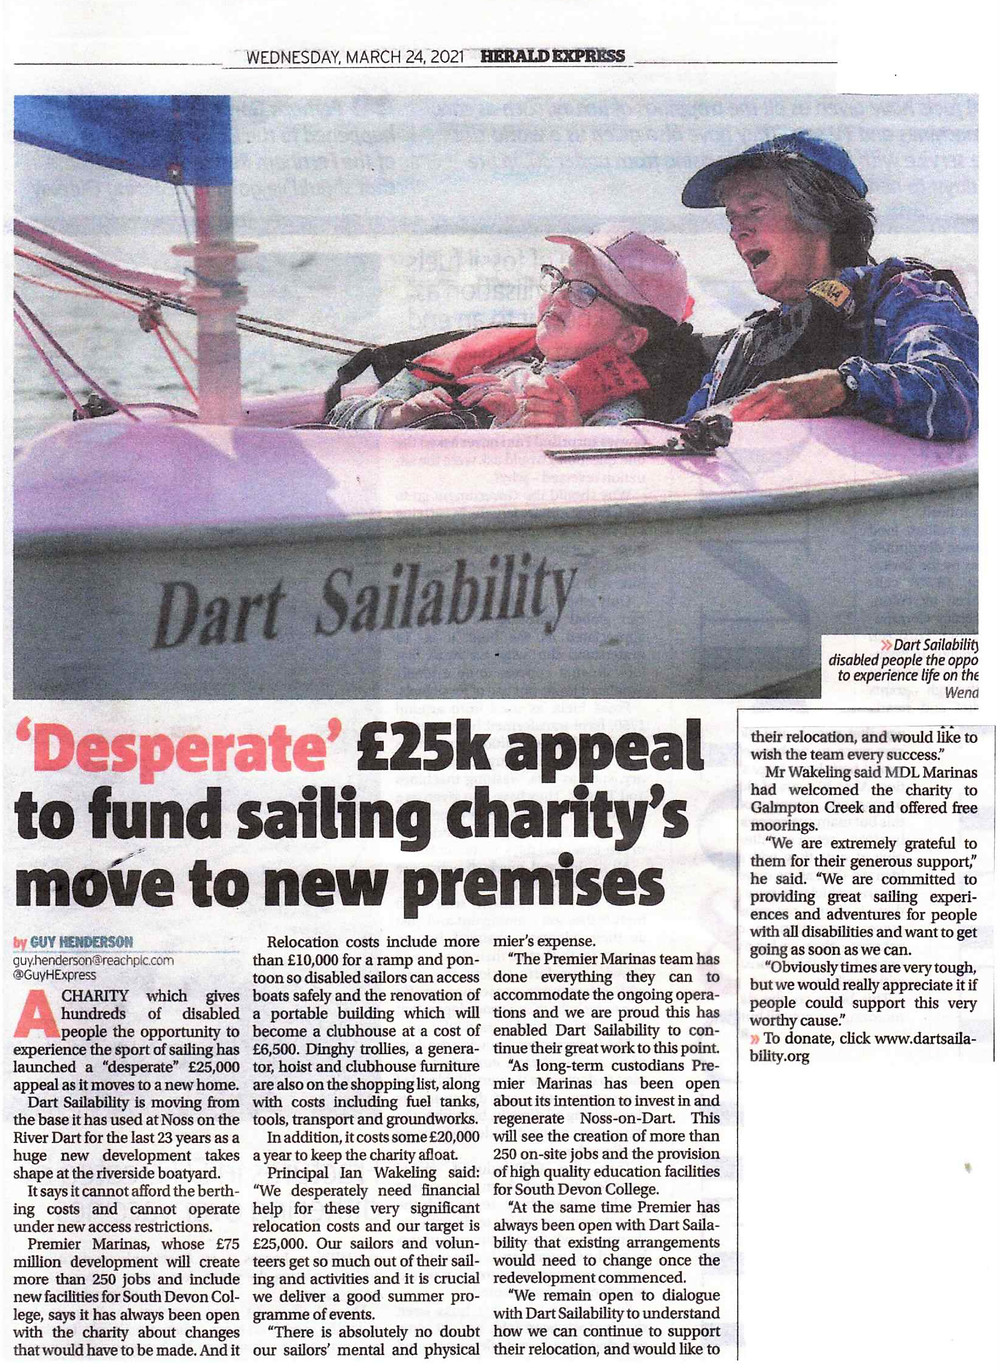 Herald express newspaper clipping about our relocation appeal